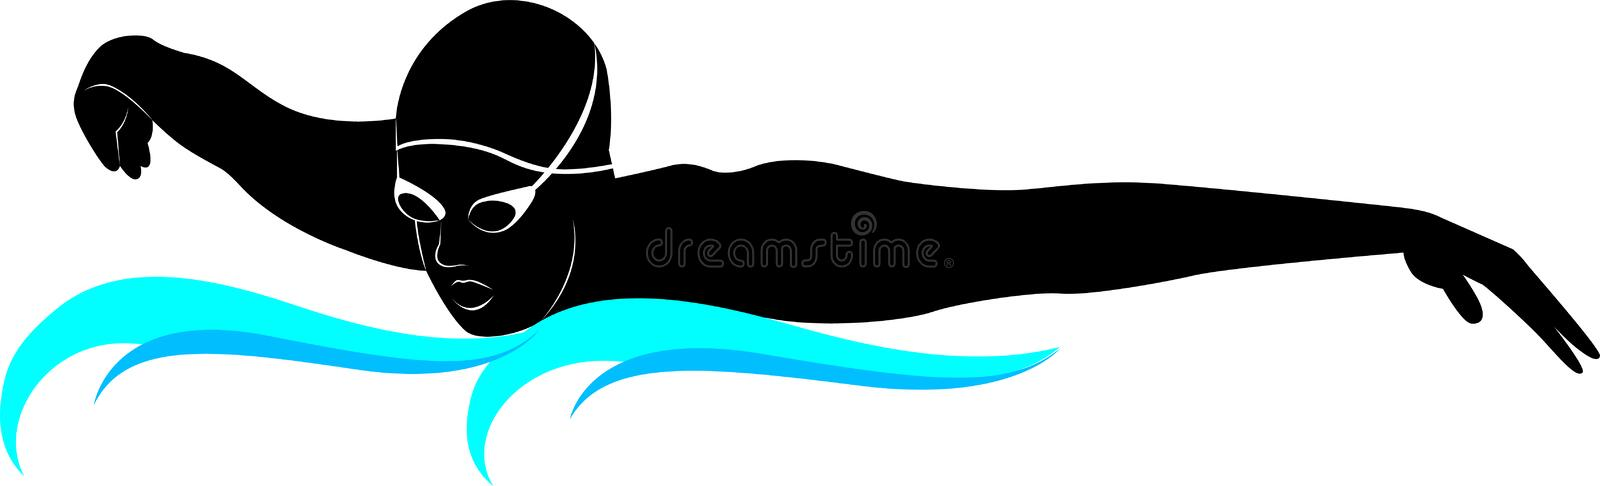 Swimmers athletes. A plain drawing of a boy swimming on a white background